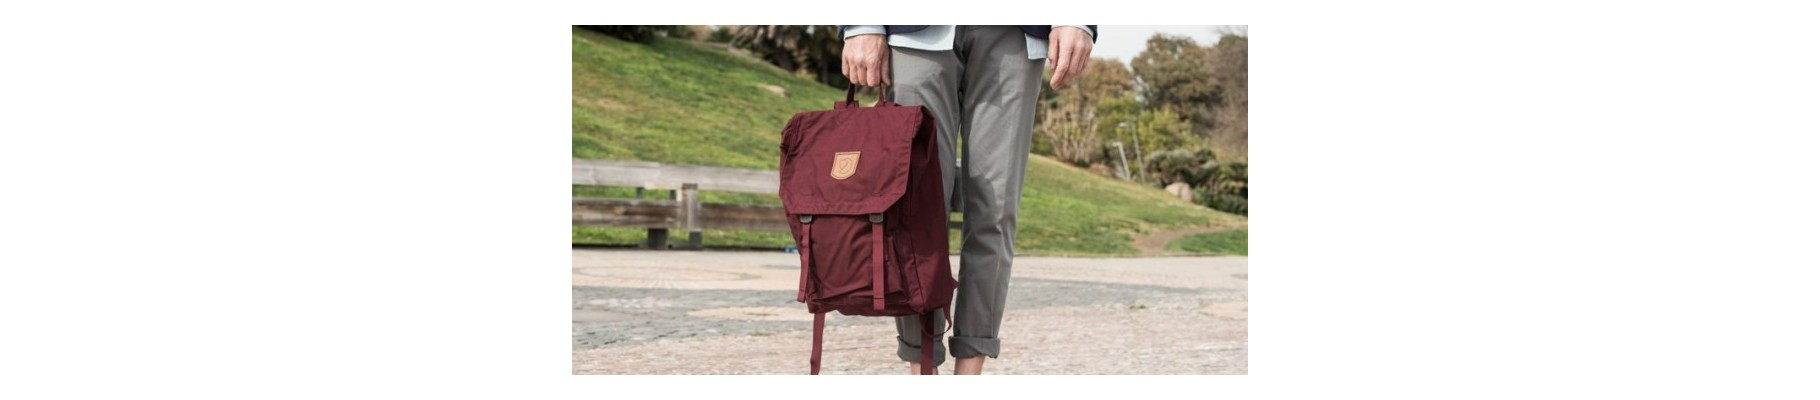 Bags and shoulder bags for men at Suneonline.com